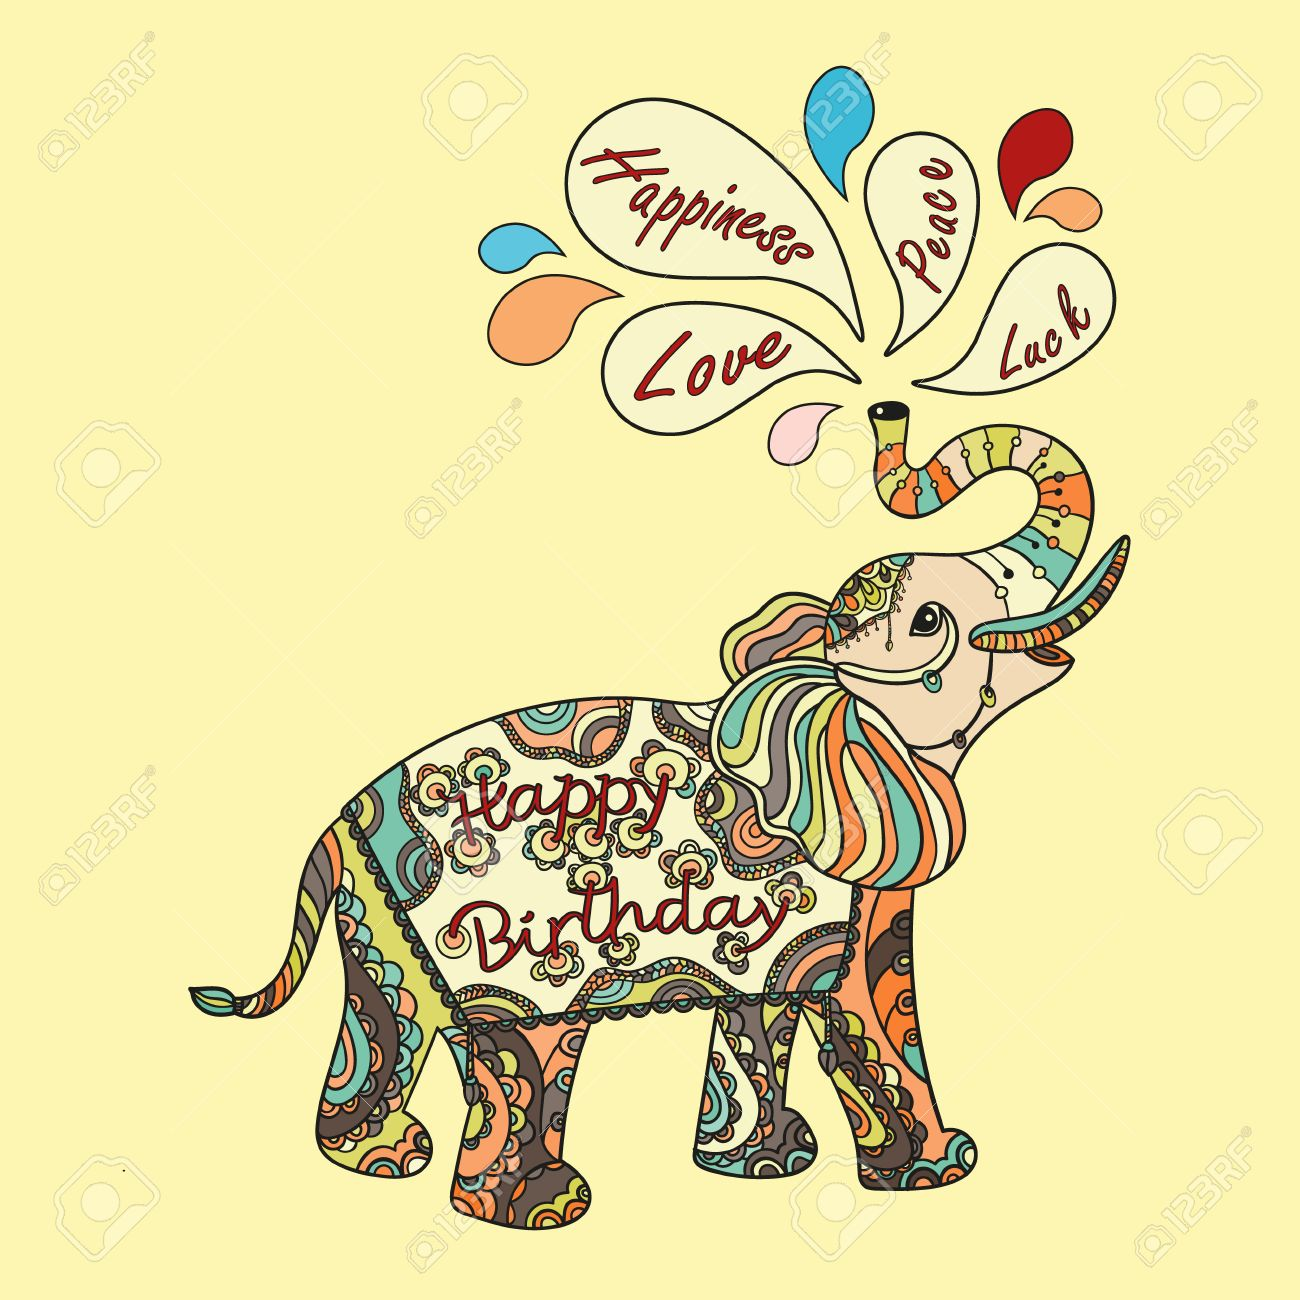 happy birthday wishes clipart ; 59613599-happy-birthday-greeting-card-with-wishes-and-fantasy-patterned-elephant-ethnic-tribal-styled-pattern